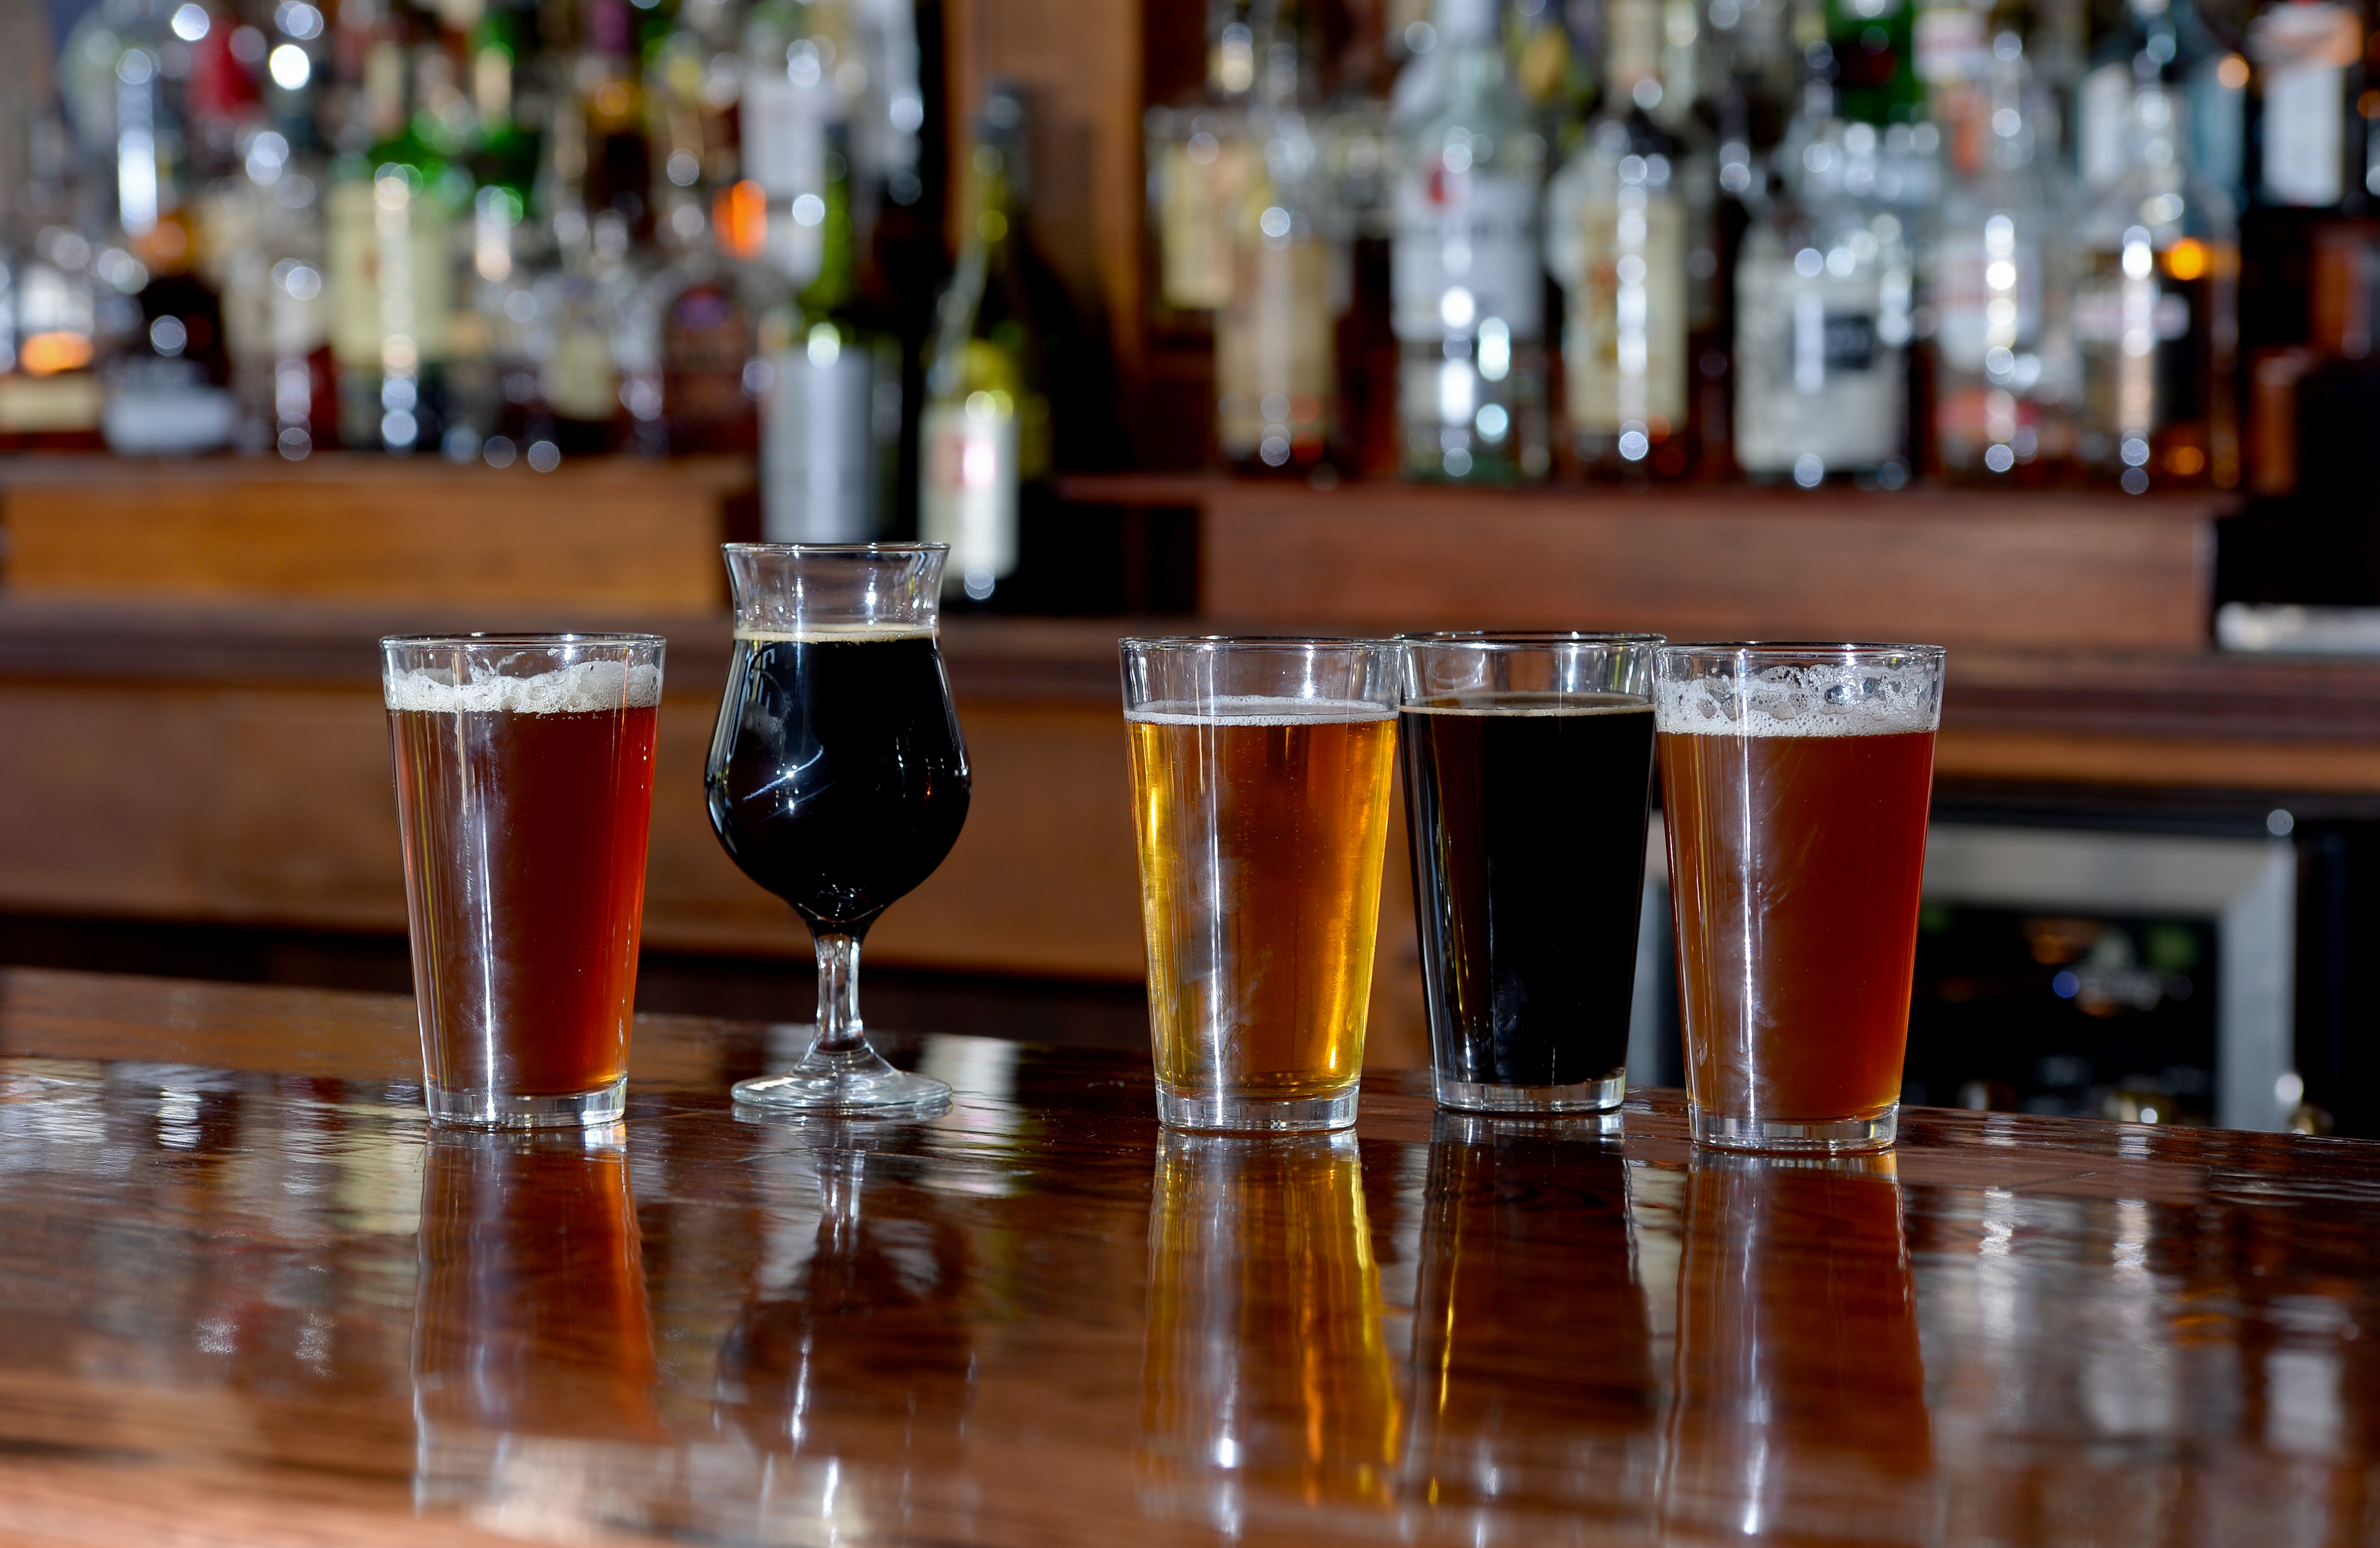 Essential beers of Pittsburgh include, from right, Penn Pilsener, Couch Raspberry Duvet, Big Hop IPA, Voodoo Big Black Voodoo Daddy and Sprague H.I.G.H. PA. (Matt Freed/Post-Gazette)